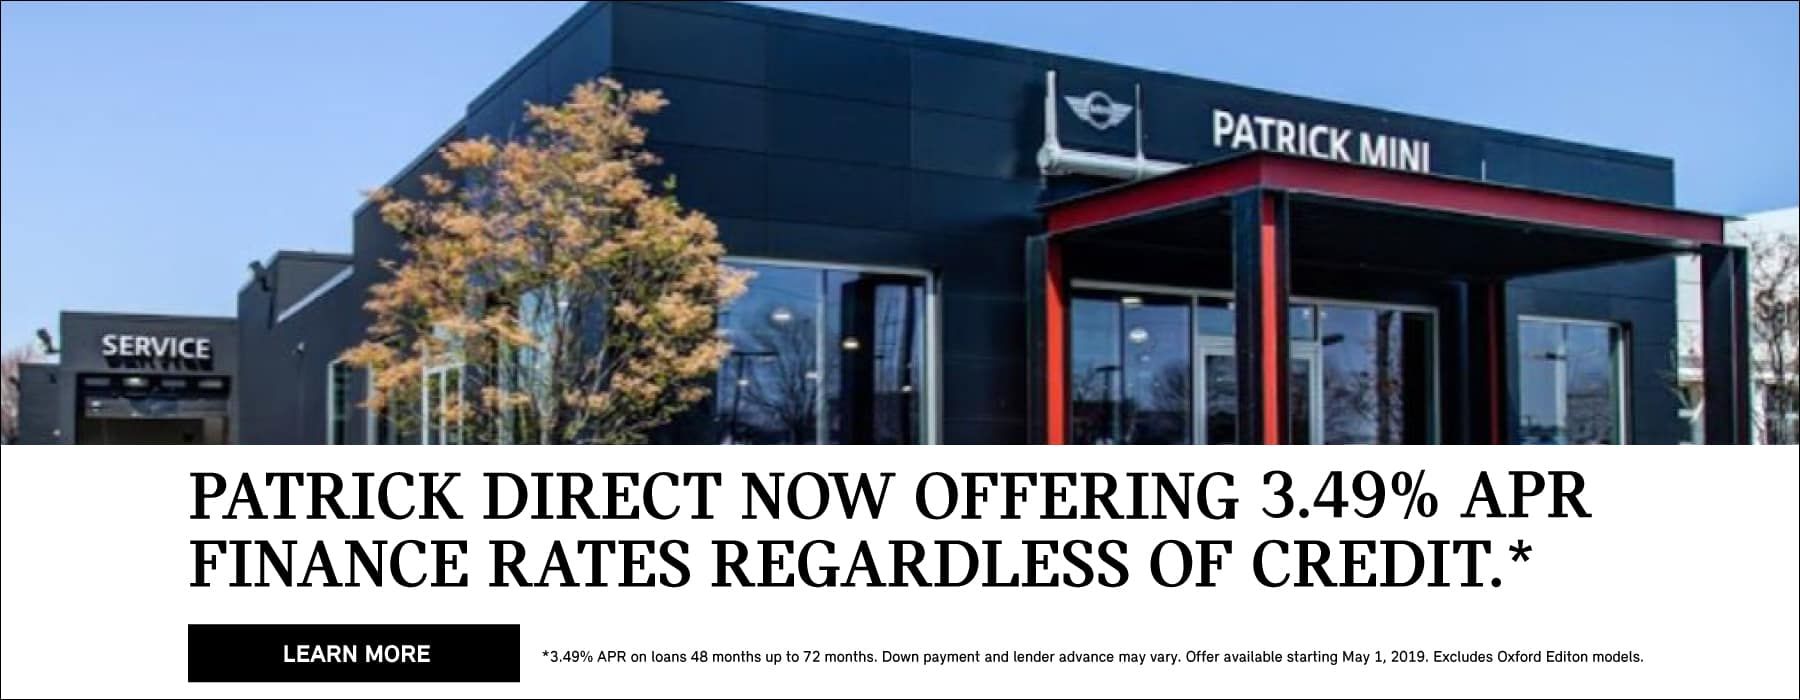 Patrick Direct now offering 3.49% APR regardless of credit.